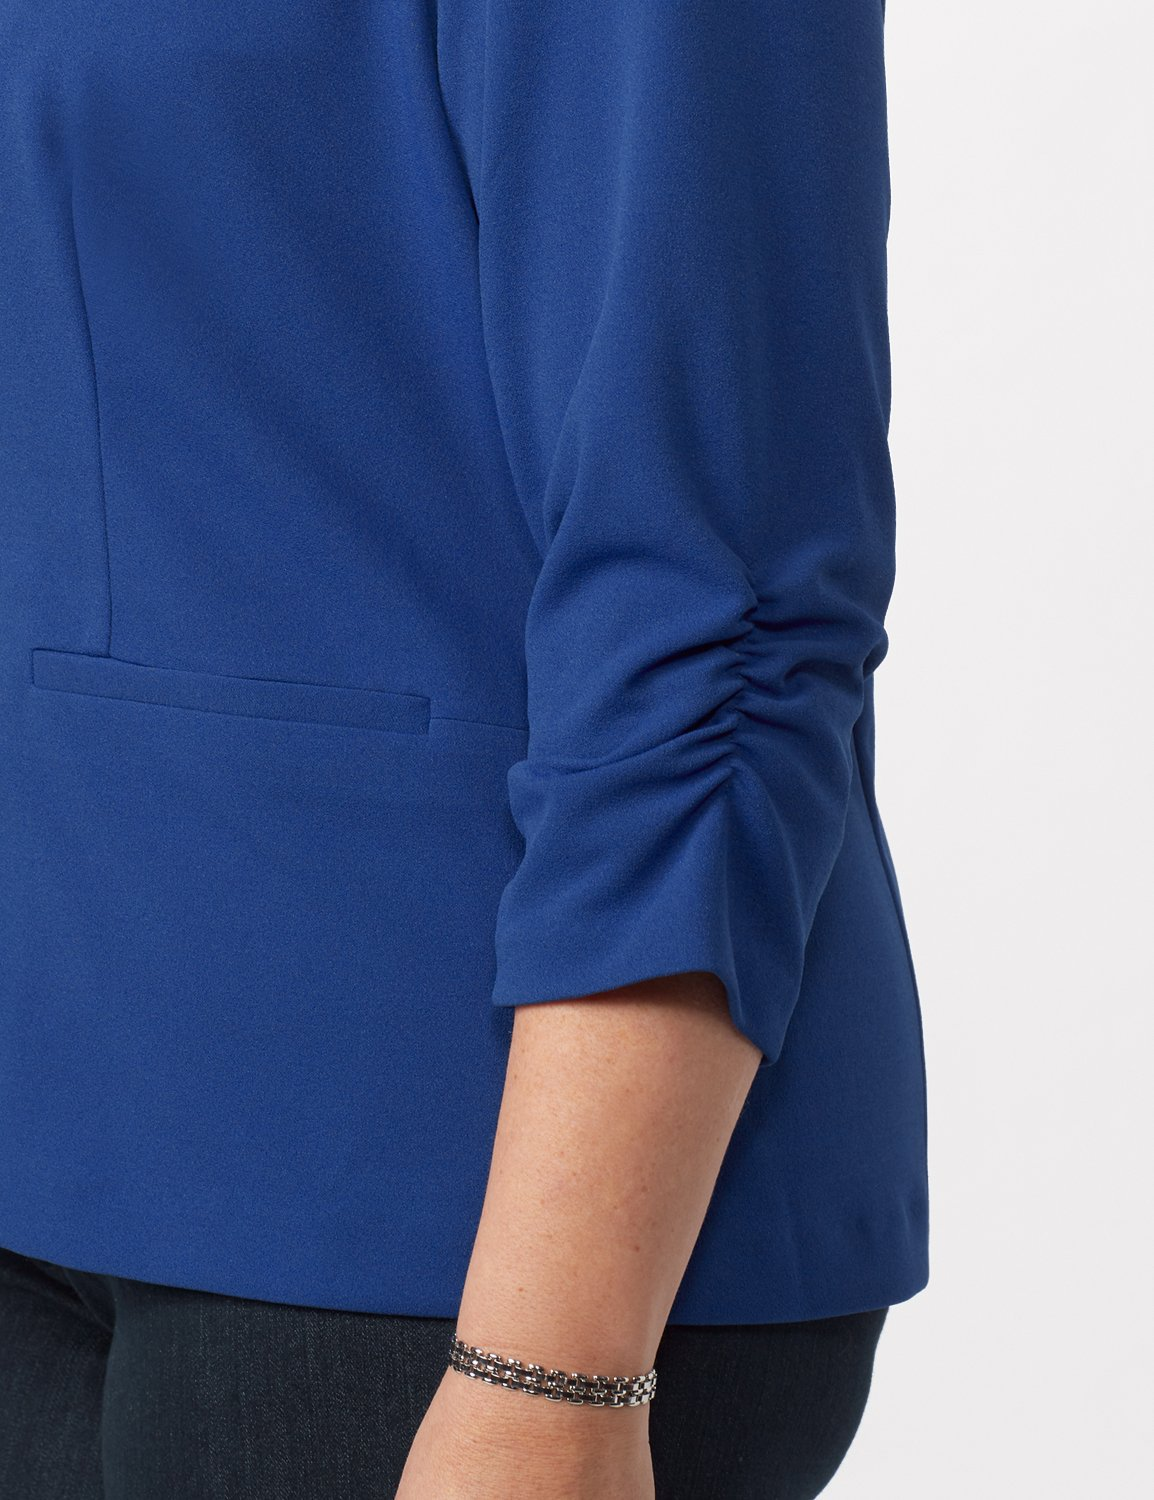 Cinched Sleeve One pocket Notch Collar Topper Plus - Royal - Detail